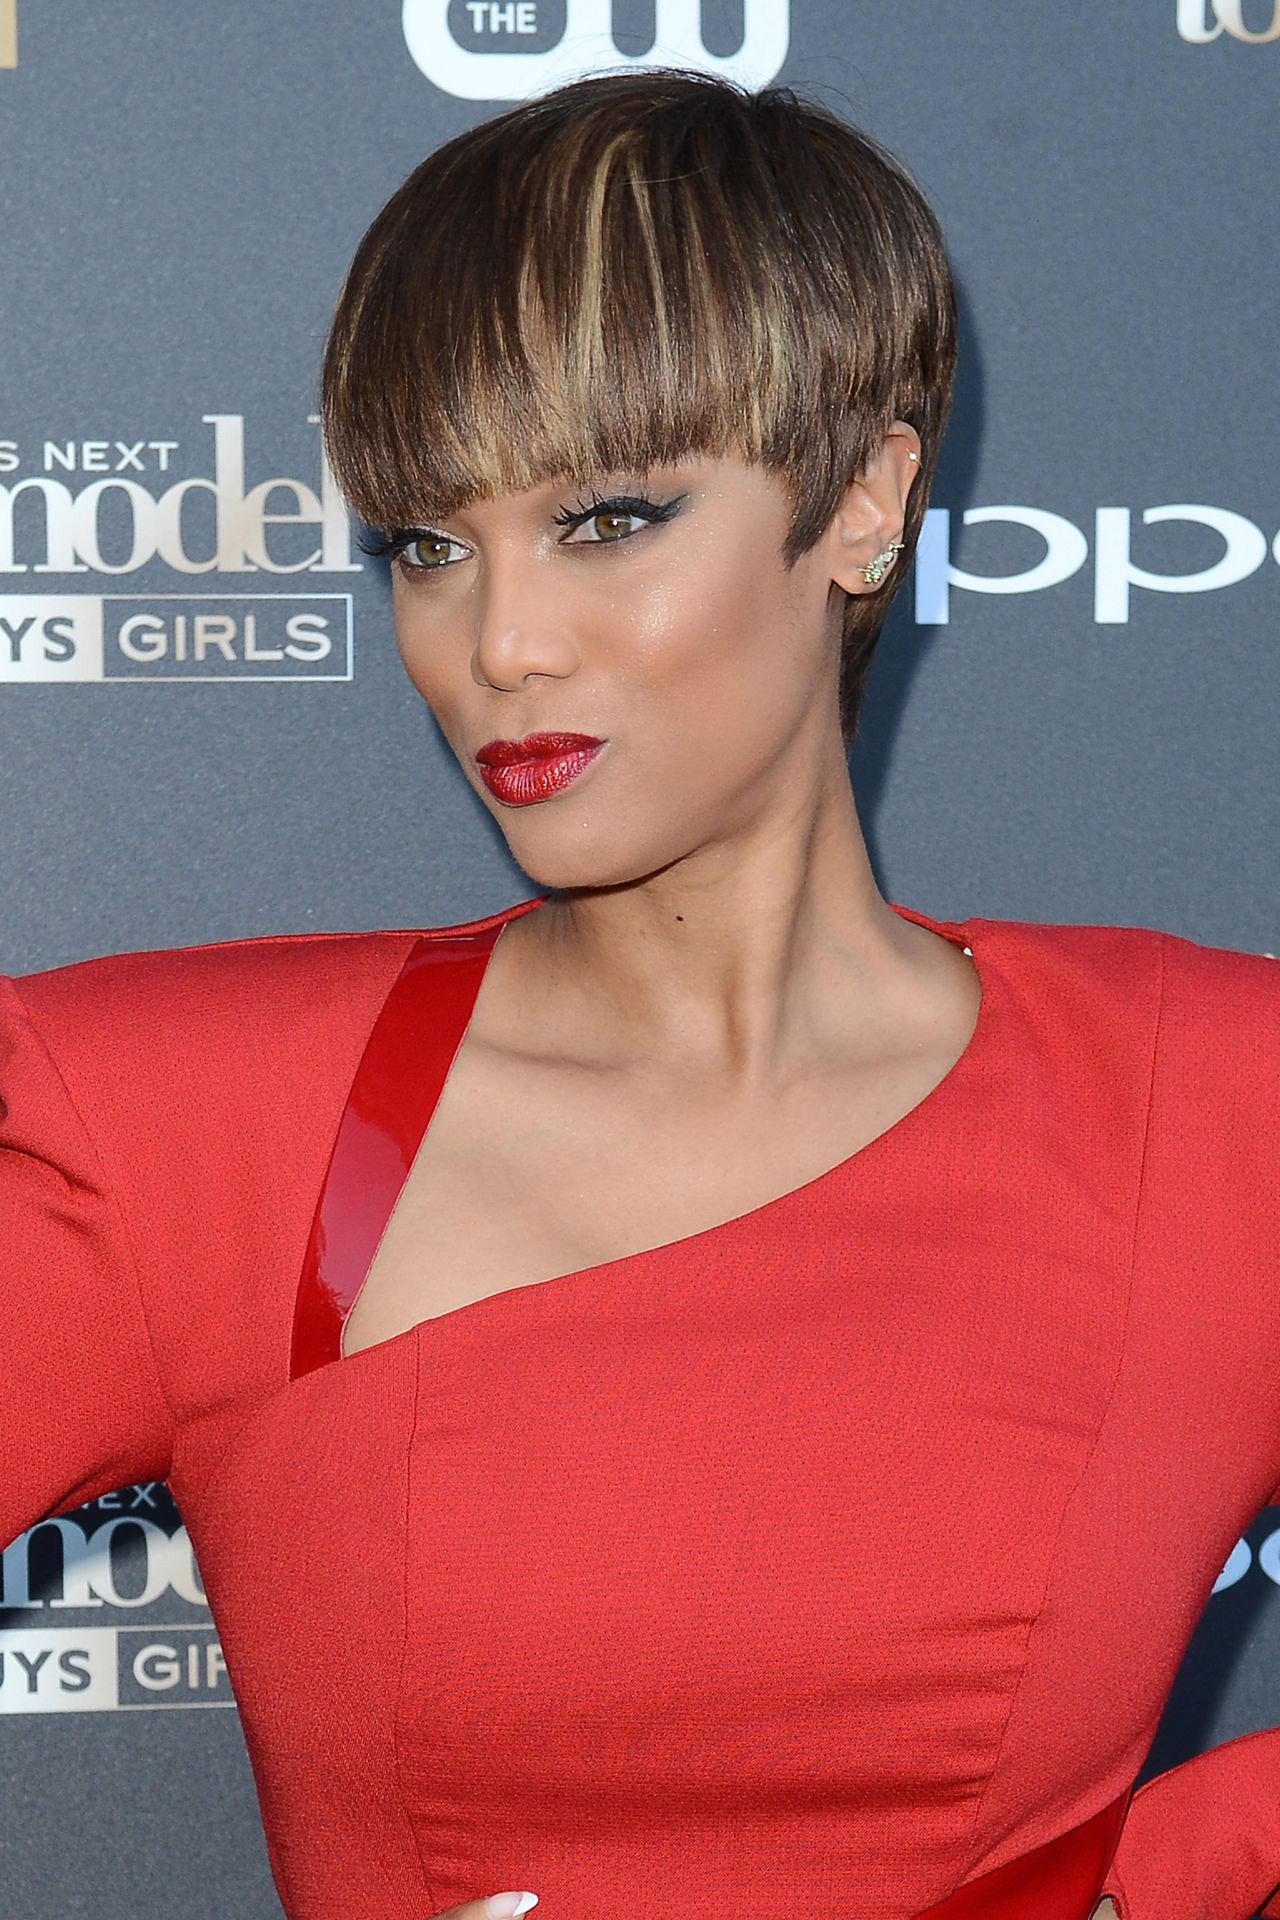 tyra-banks-on-red-carpet-americas-next-top-model-cycle-22-party-july-2015_4